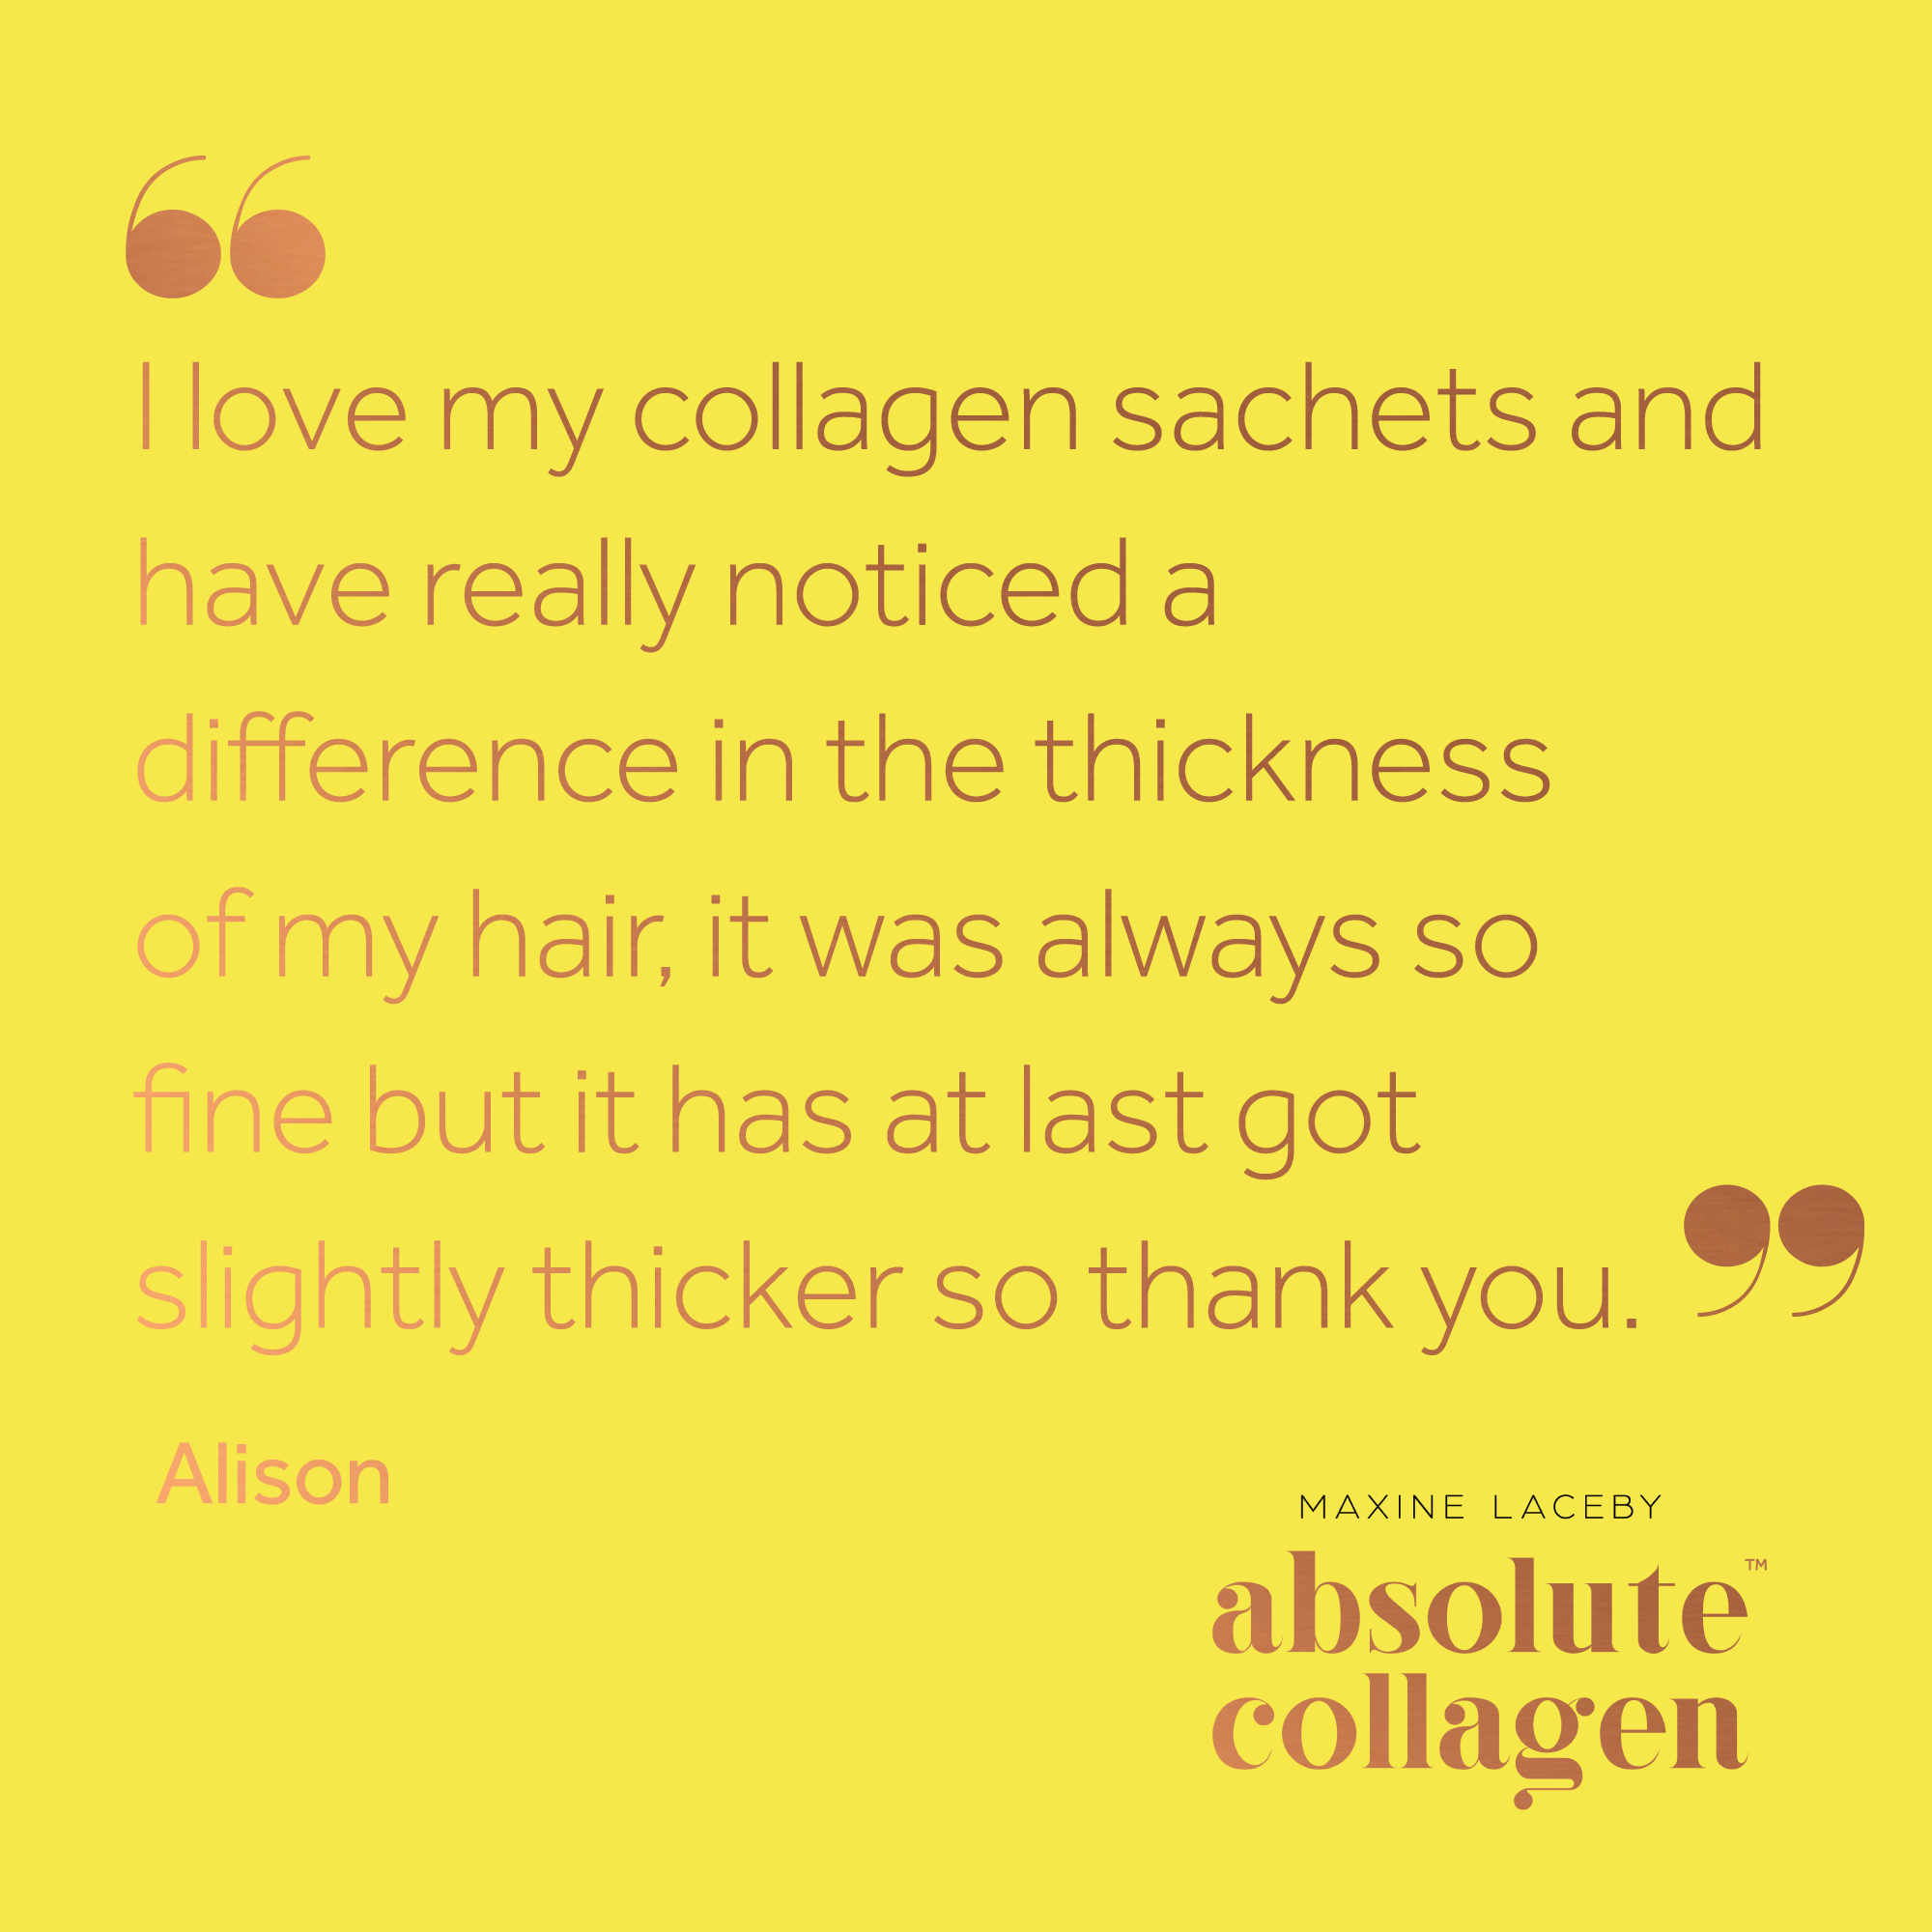 Quote from Alison about how Absolute Collagen helped her hair